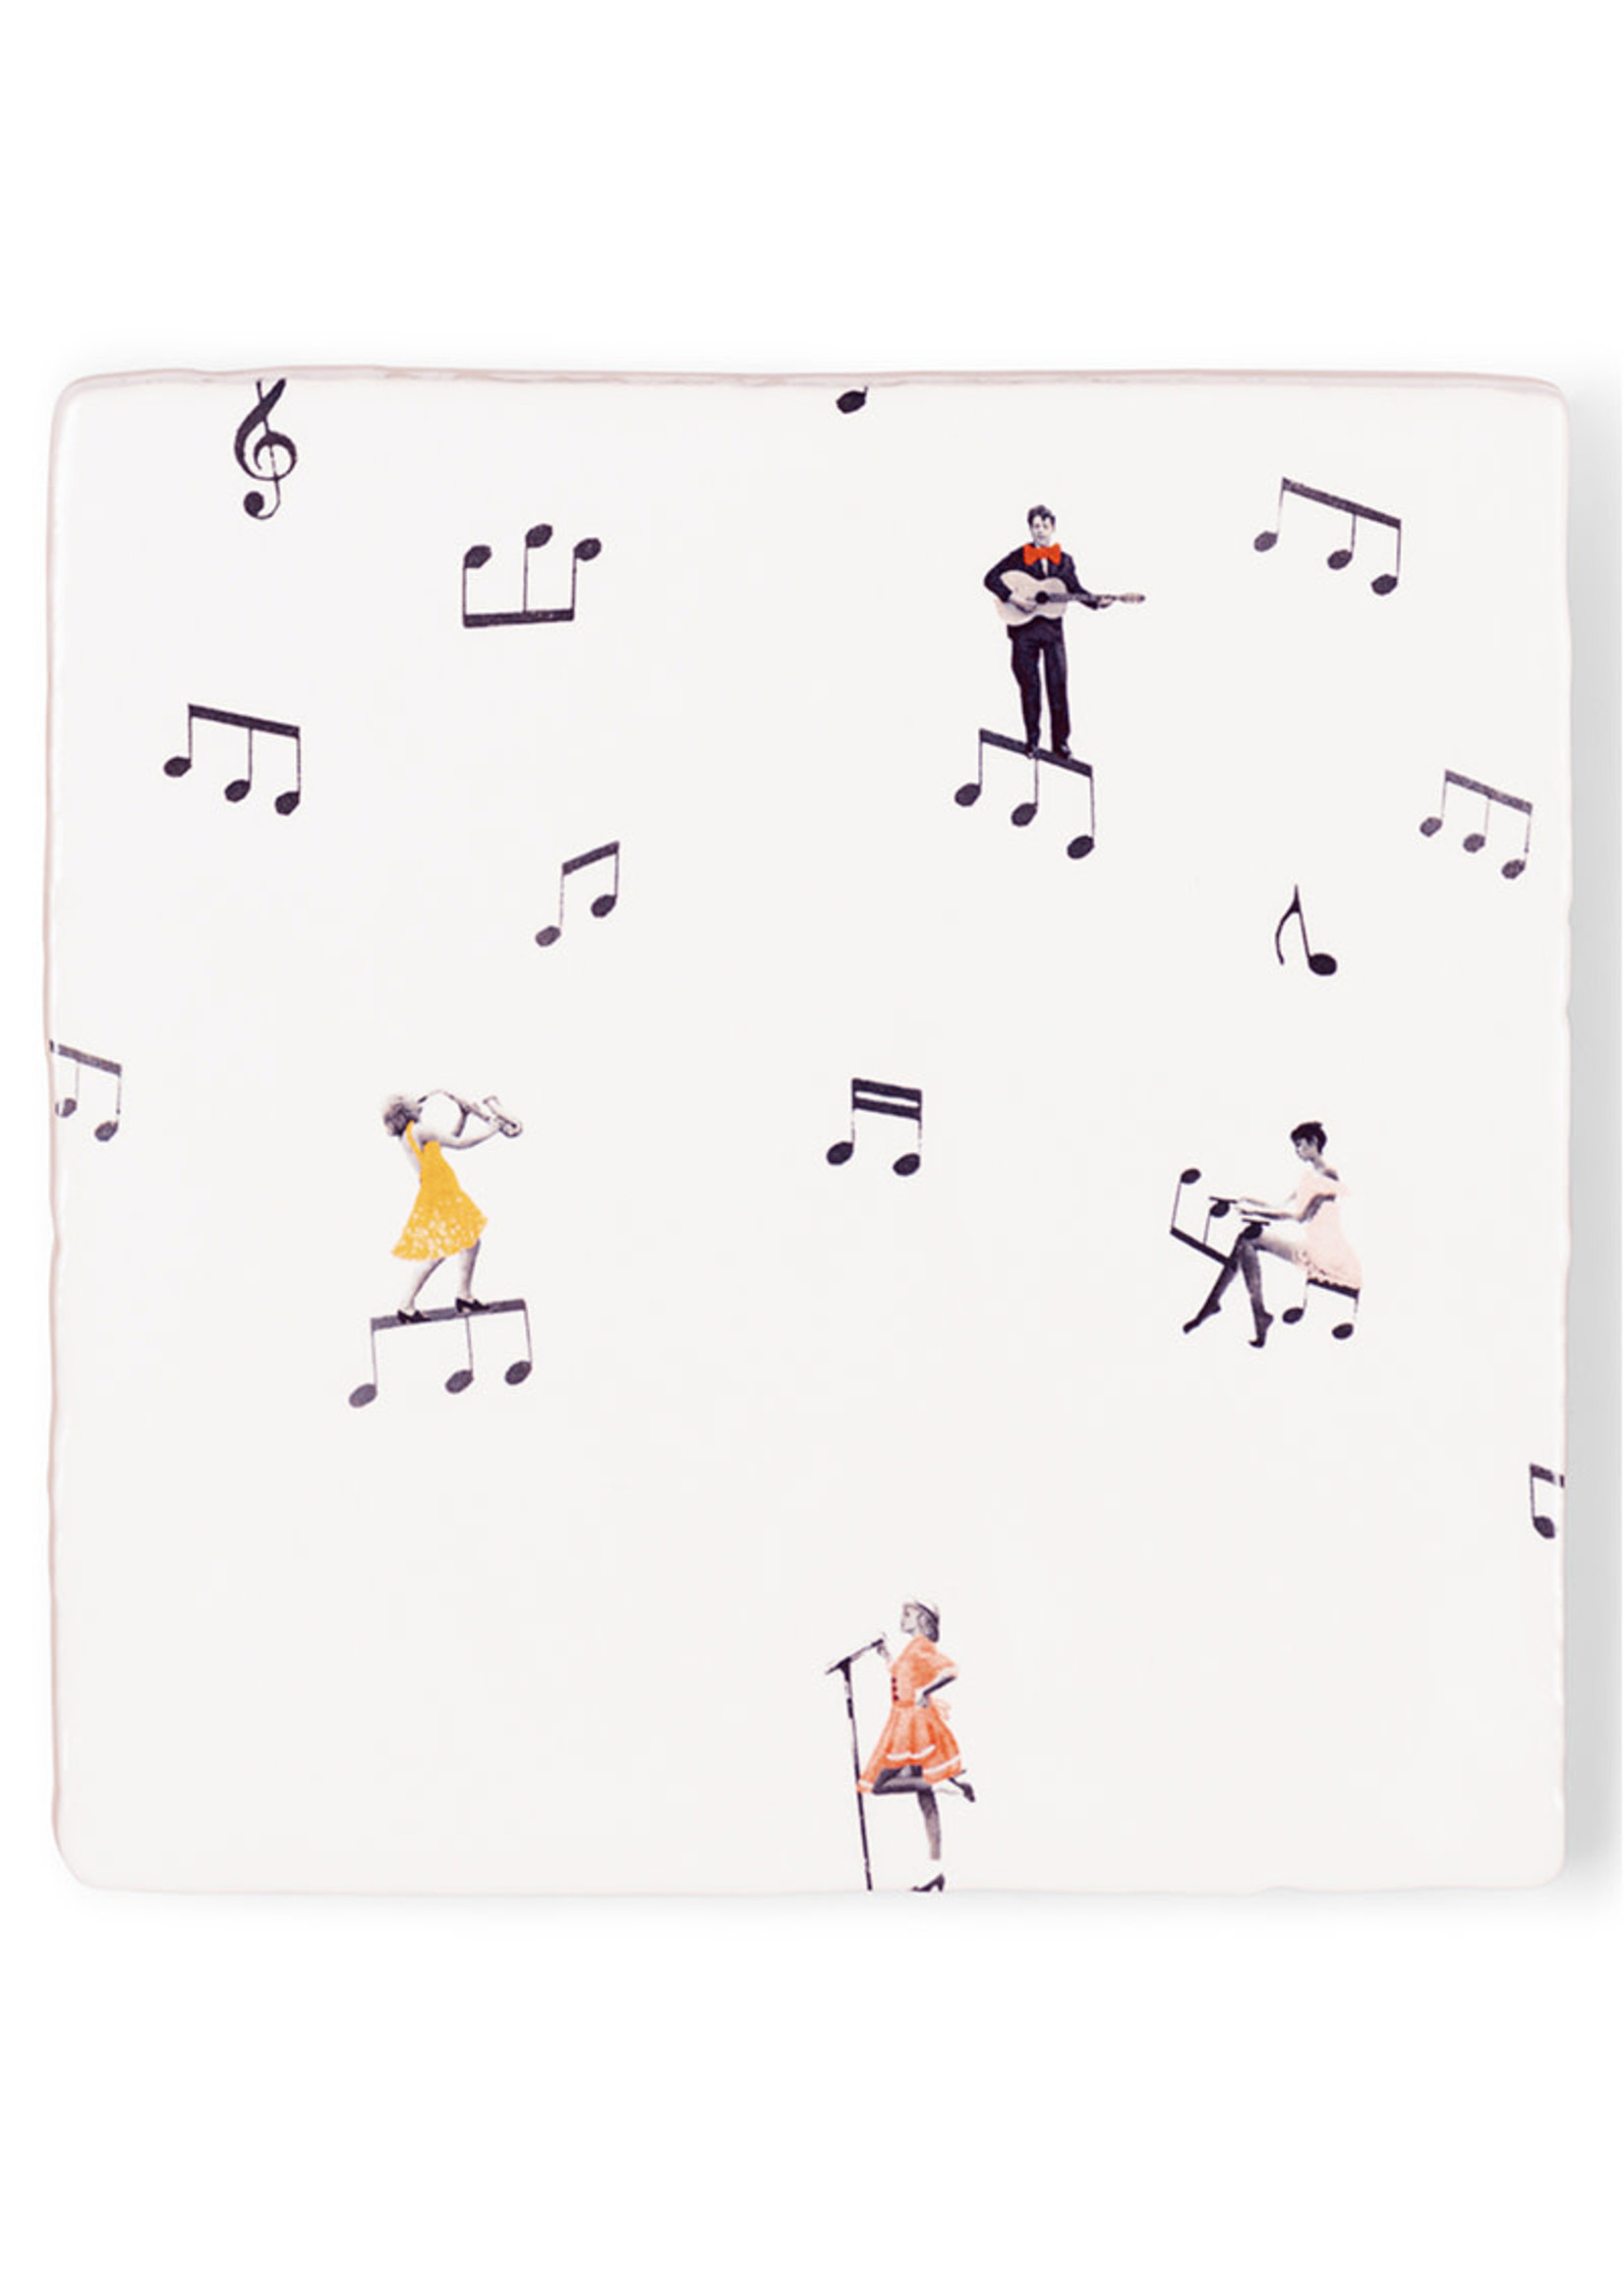 Storytiles There's music in the air 13x13cm